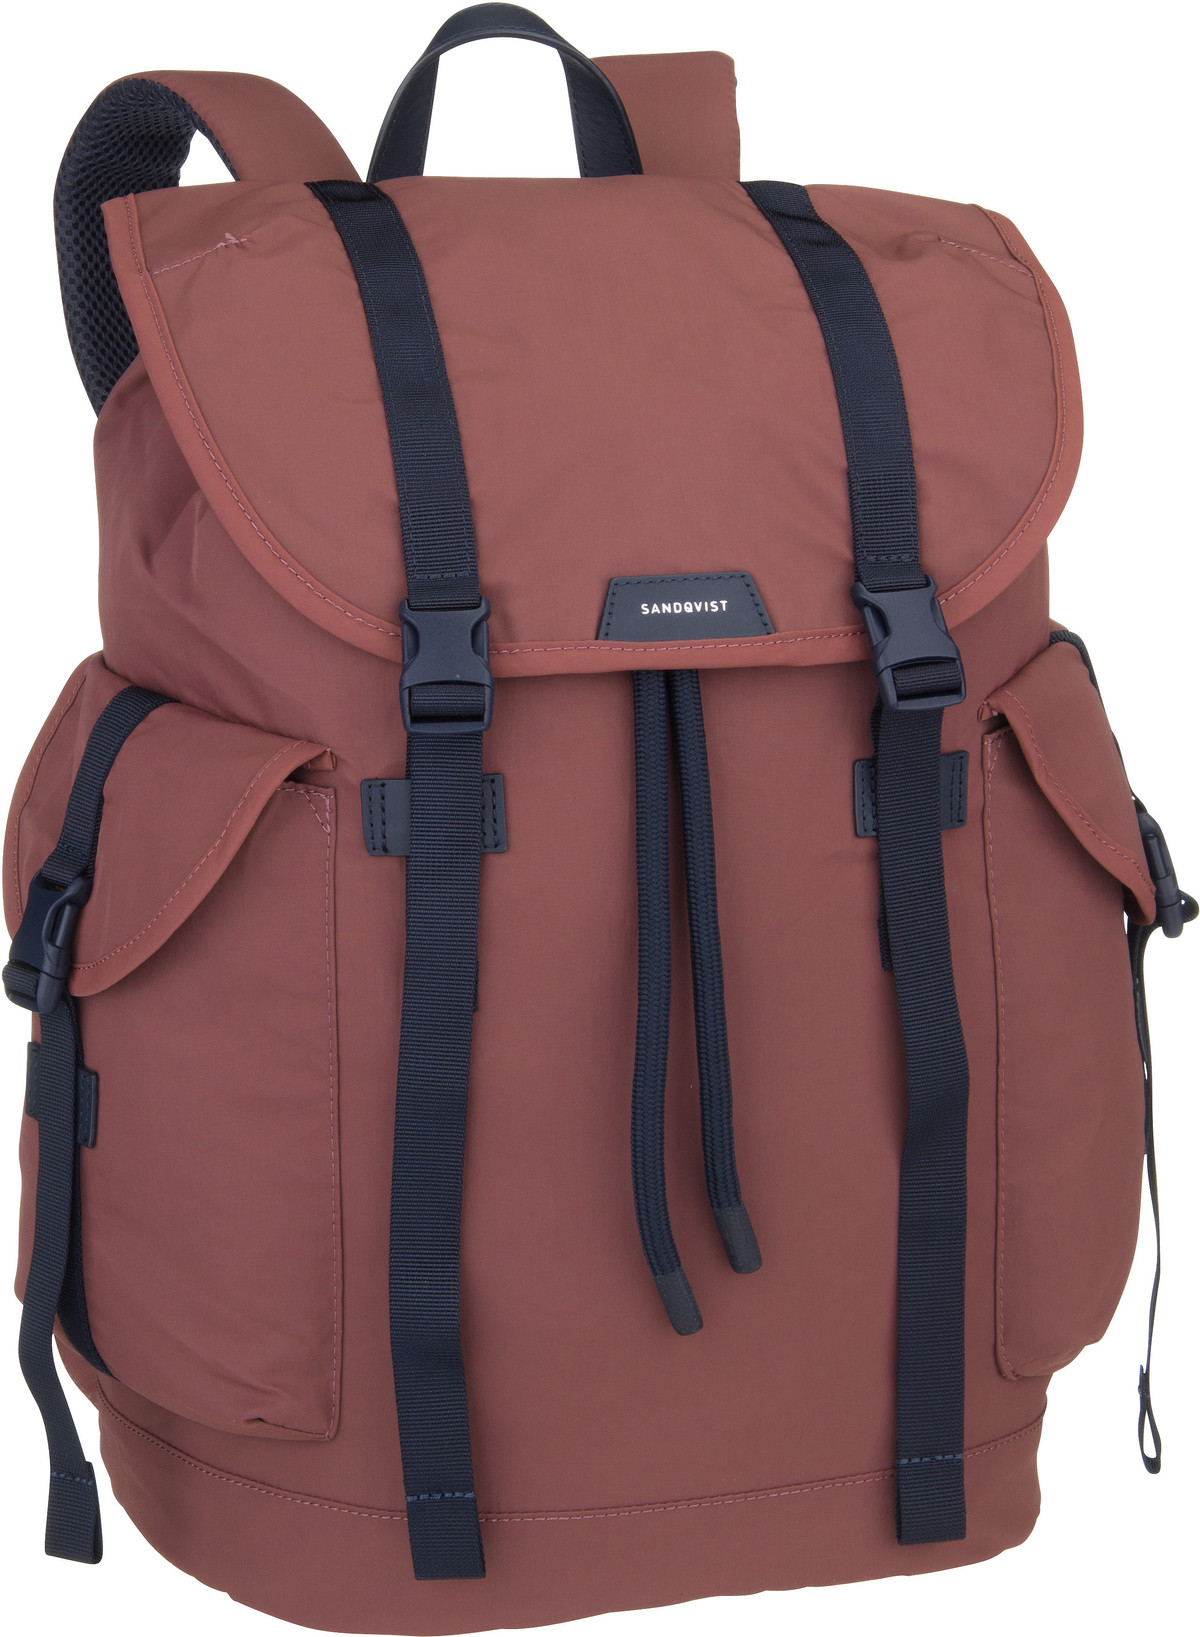 Rucksack / Daypack Charlie Backpack Maroon/Navy Leather (16 Liter)